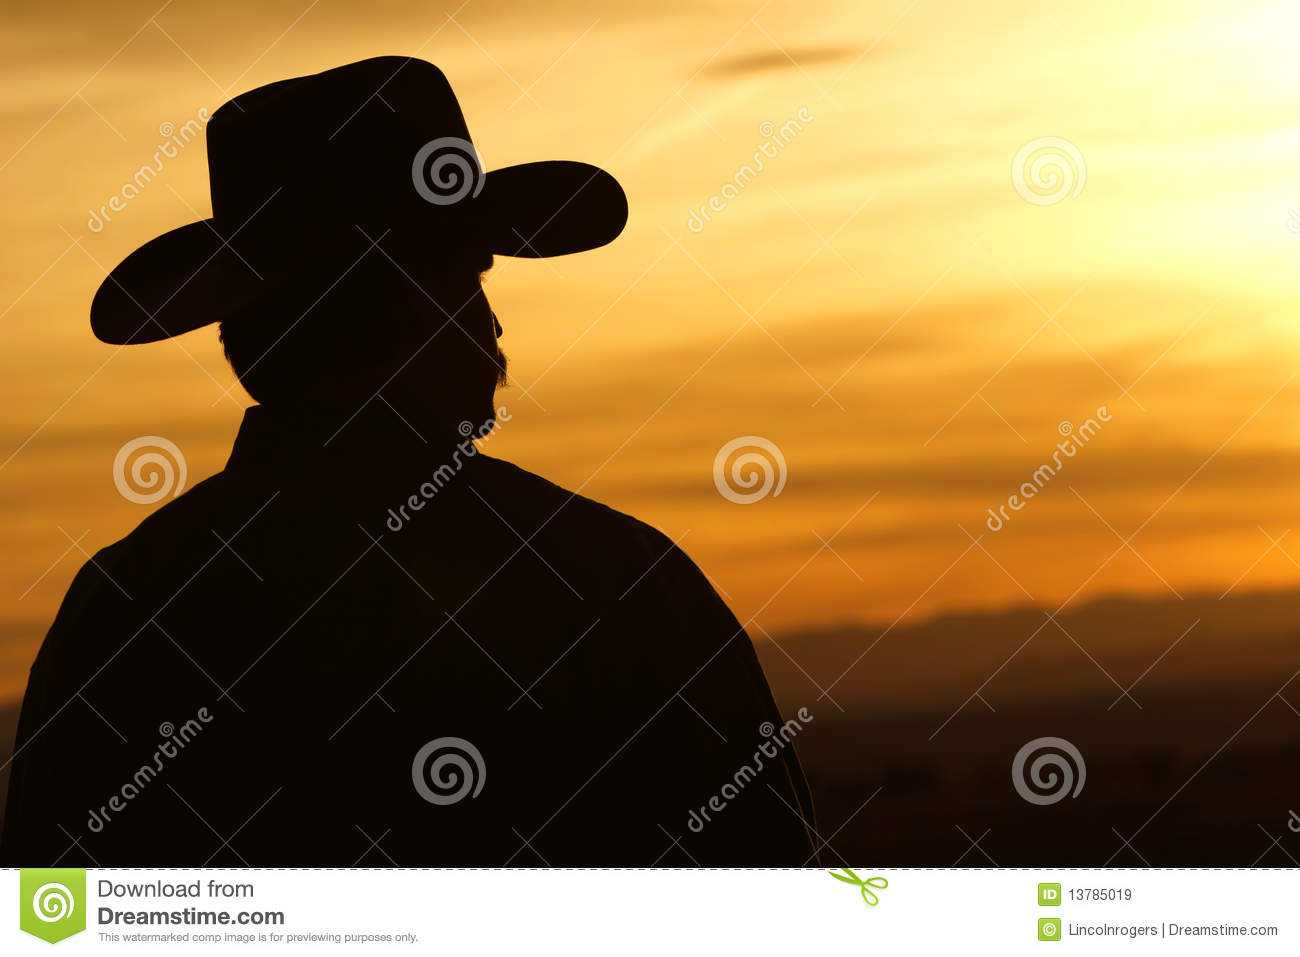 Cowboy Sunset Silhouette Stock Image. Image Of Rural